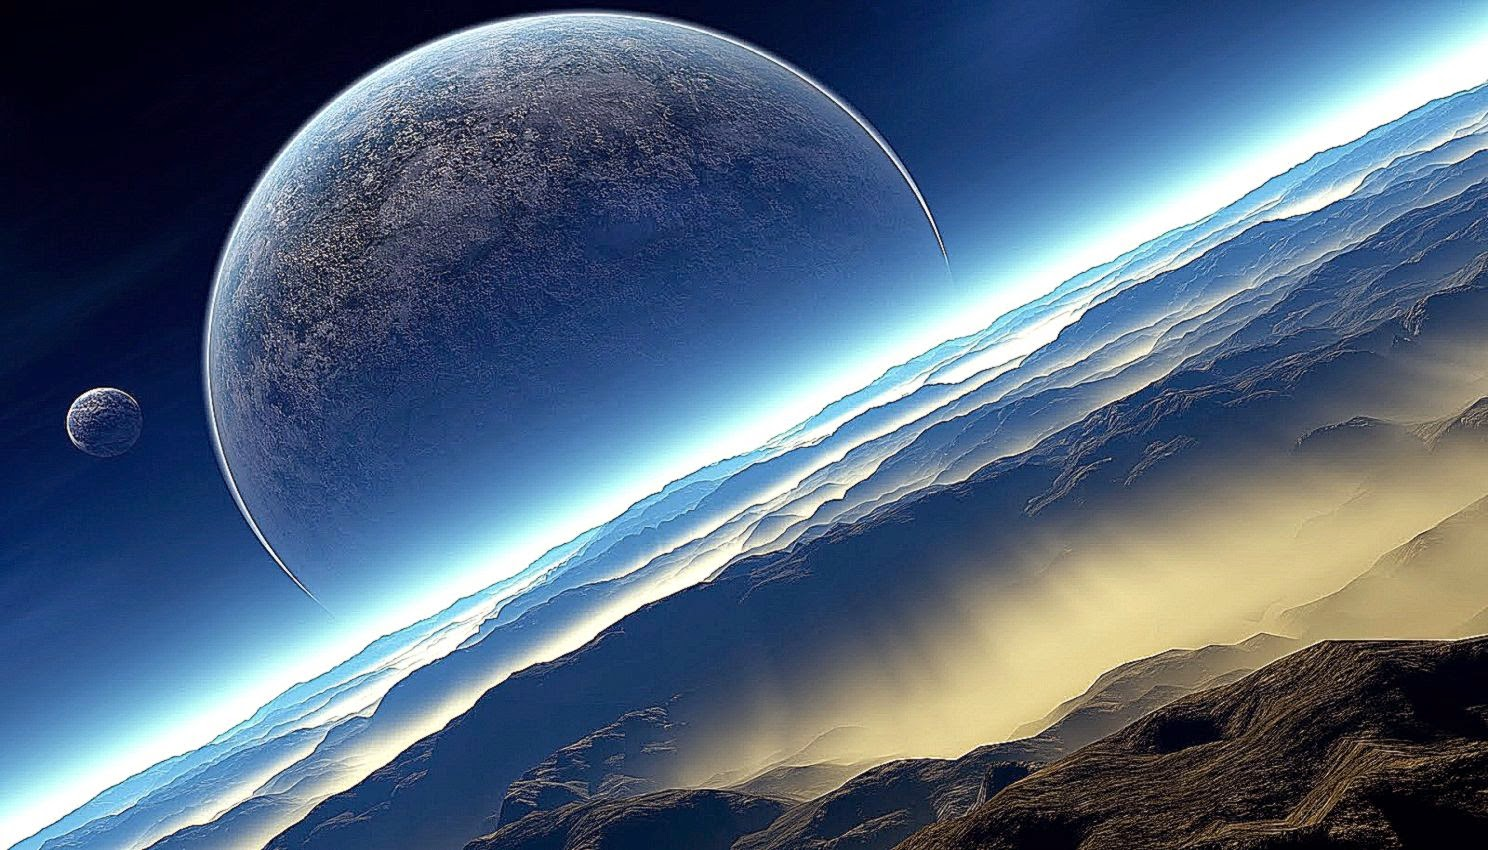 space wallpaper real nature - photo #12